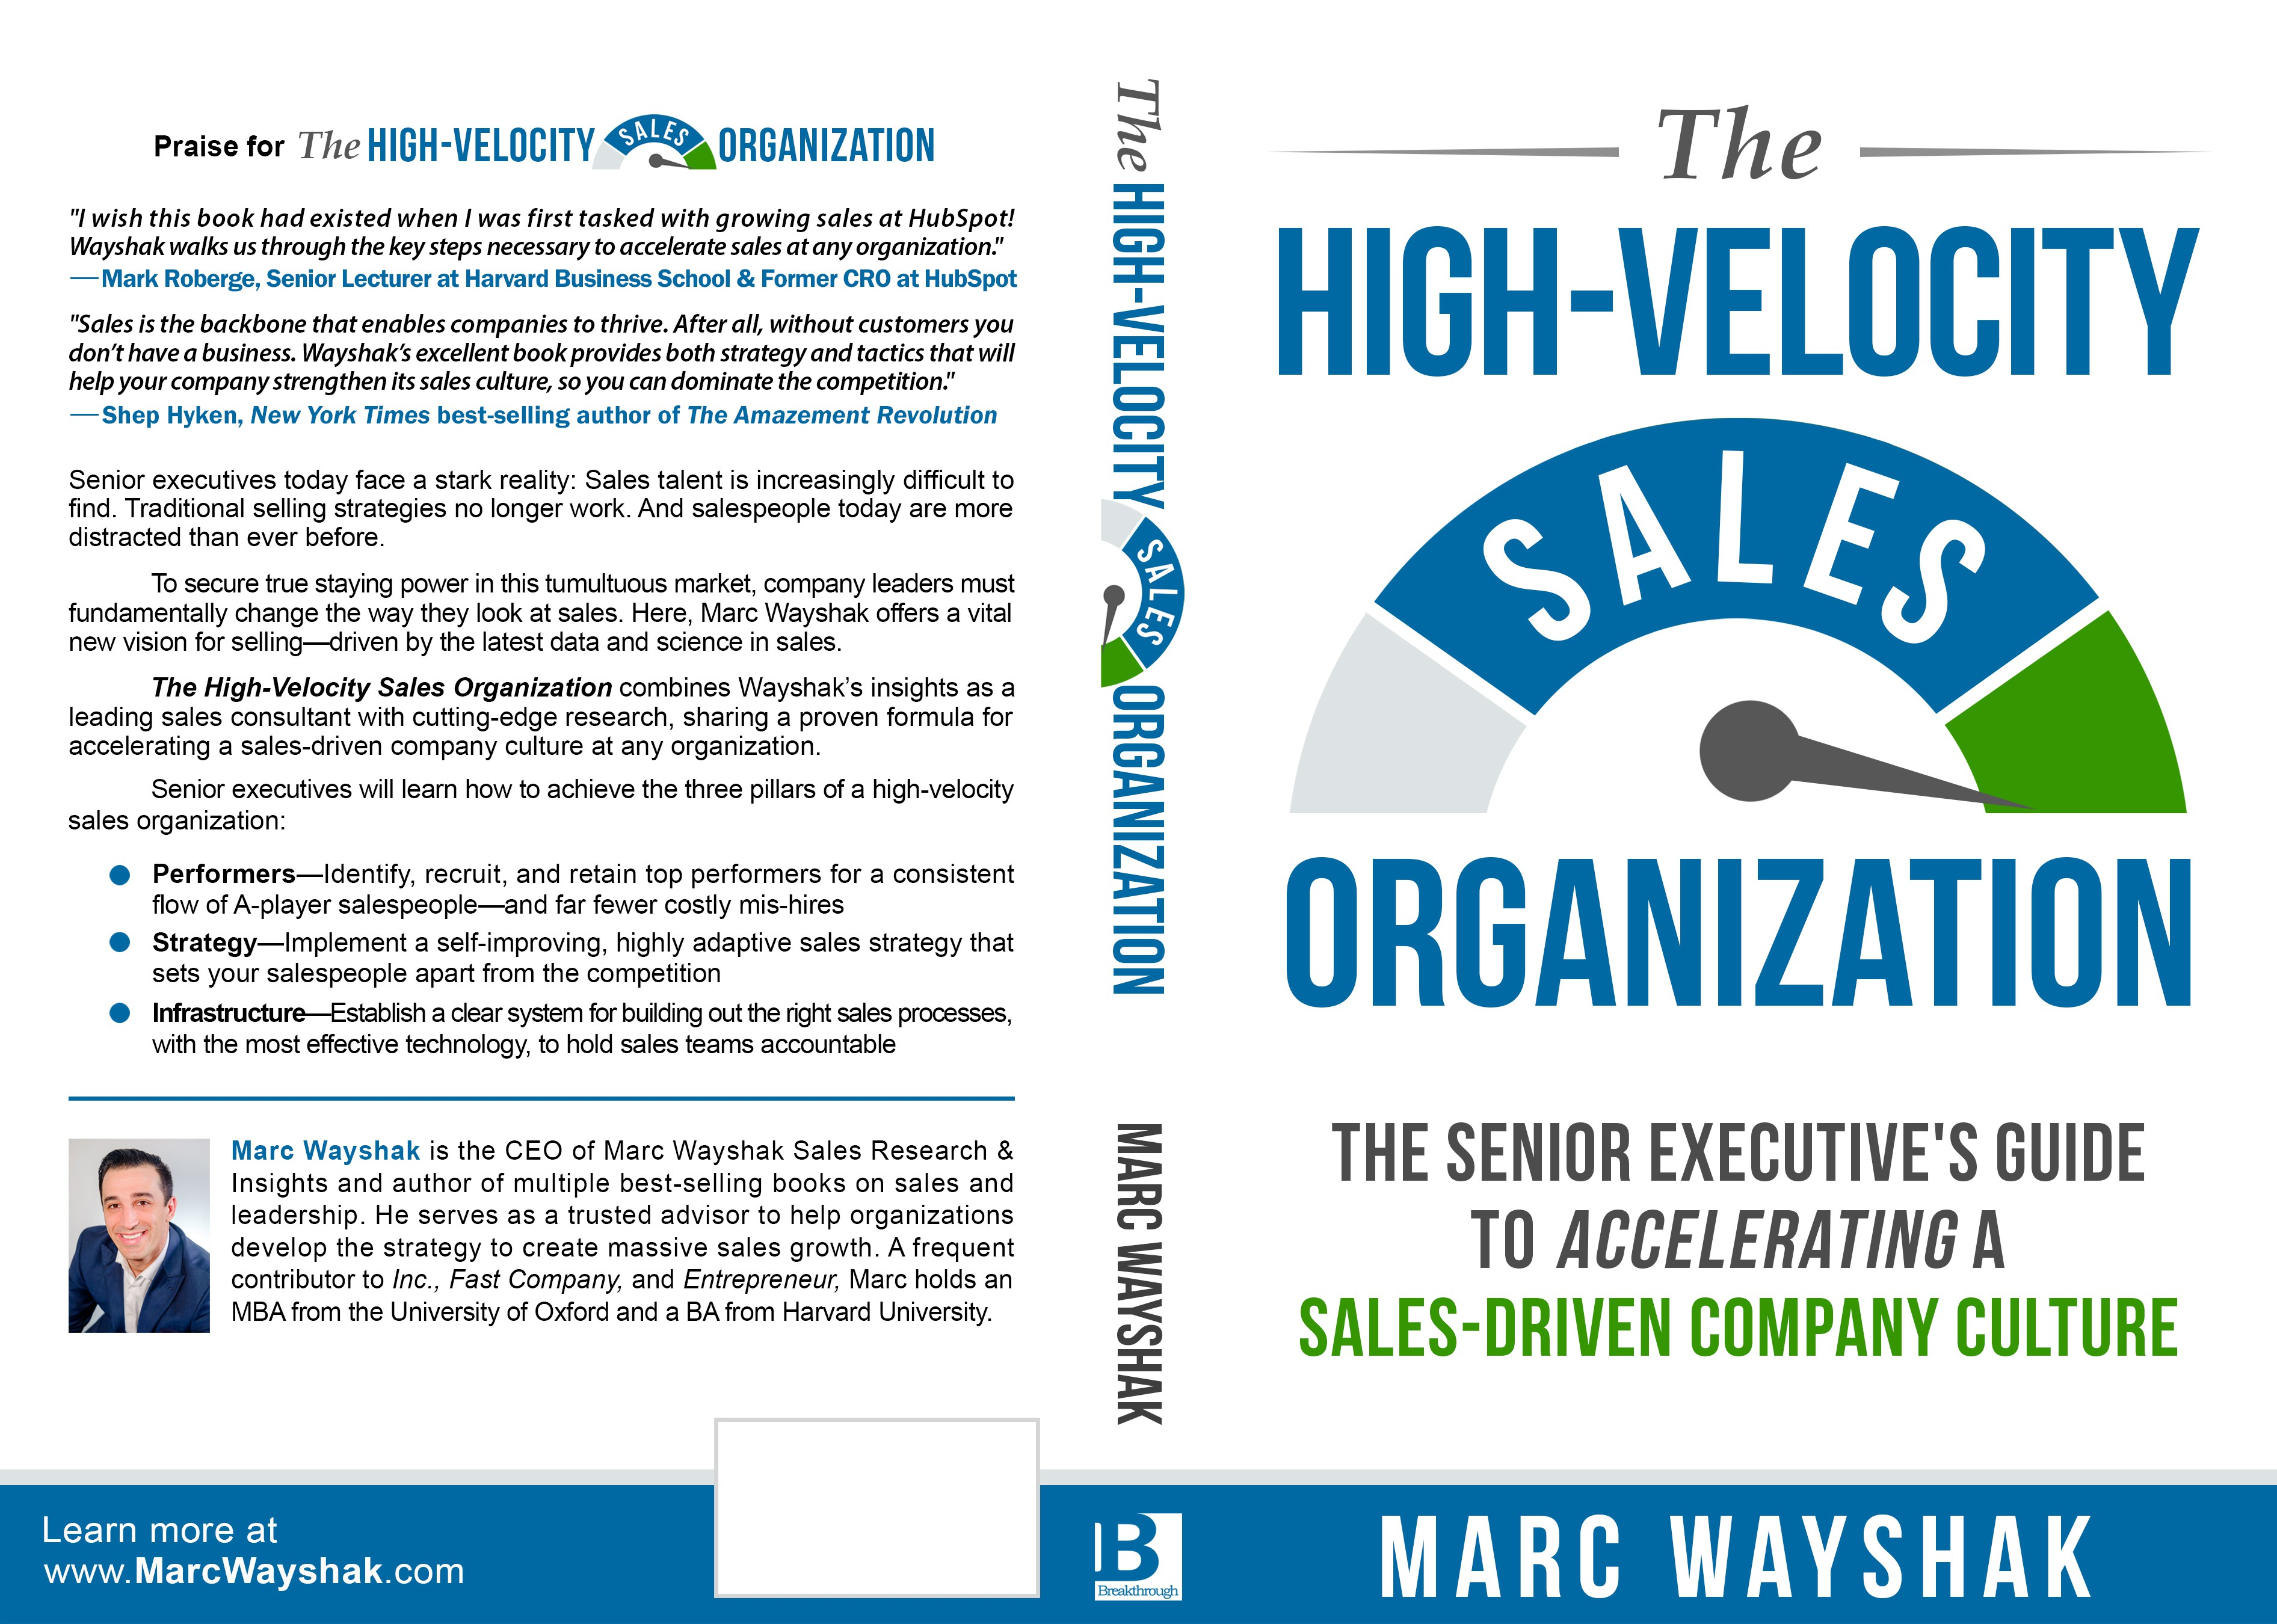 Looking for a book cover that will blow away senior sales execs!